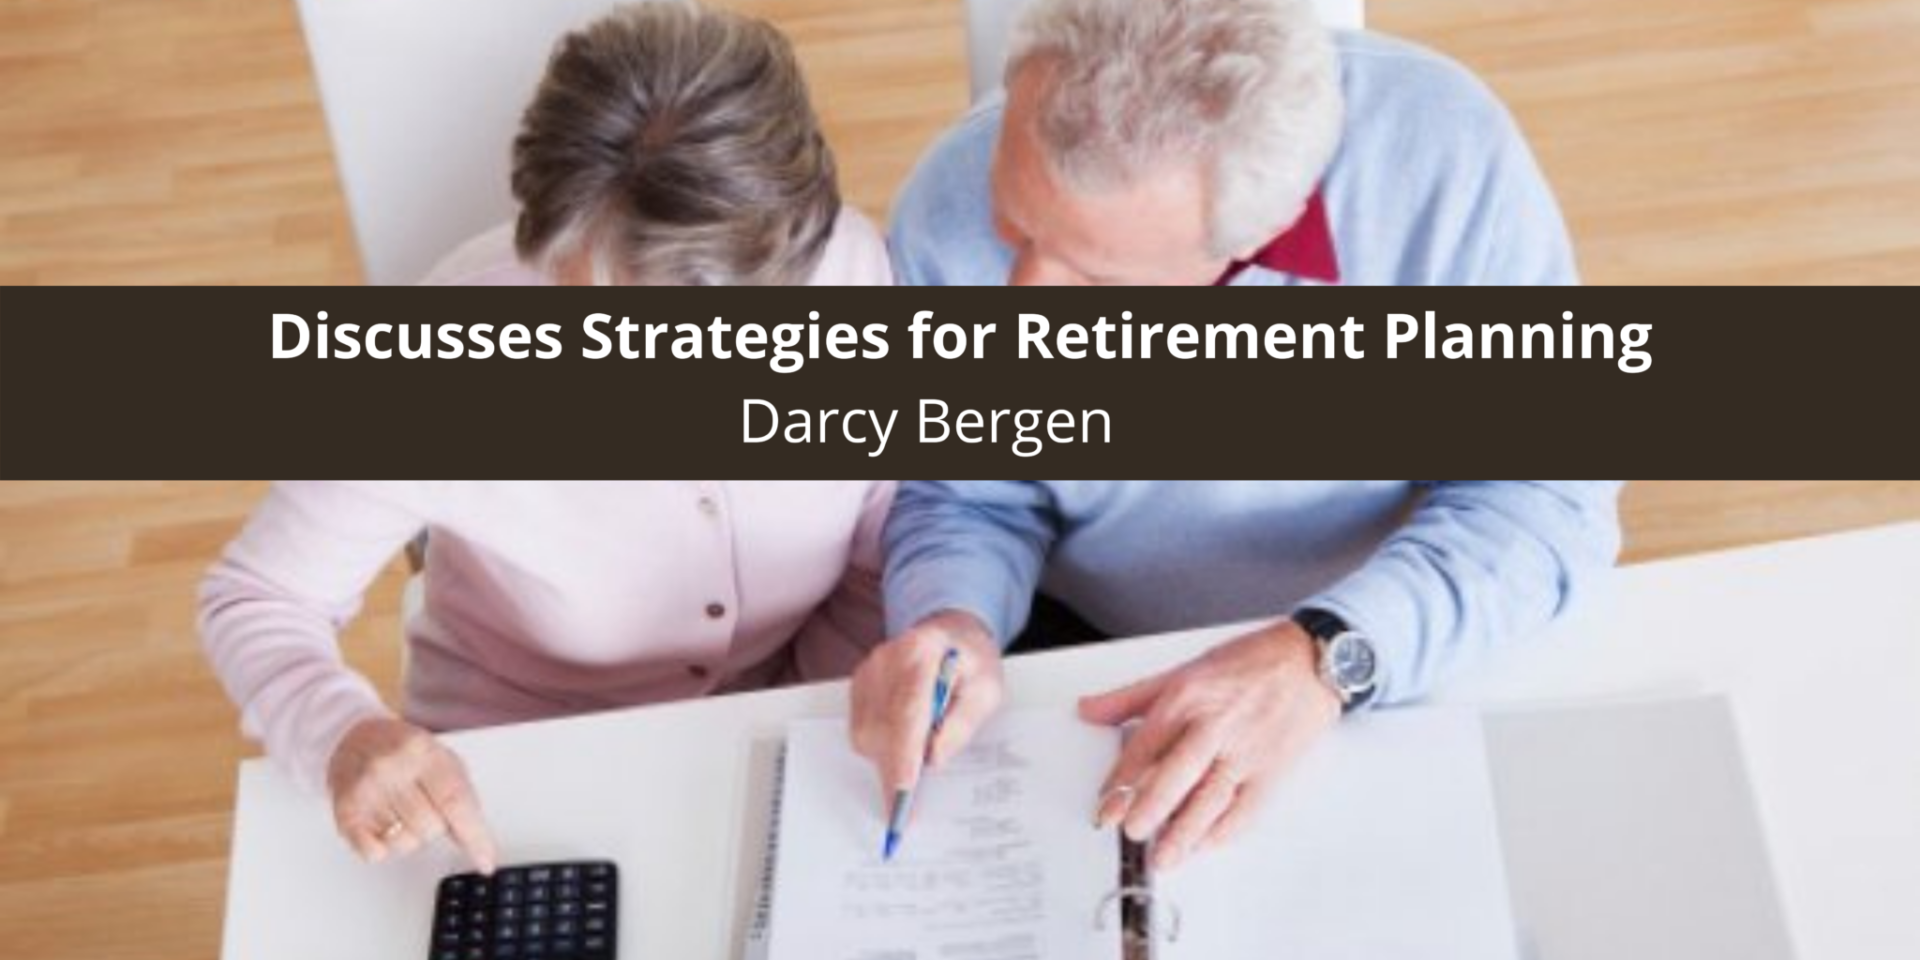 Financial Planner Darcy Bergen Discusses Strategies for Retirement Planning